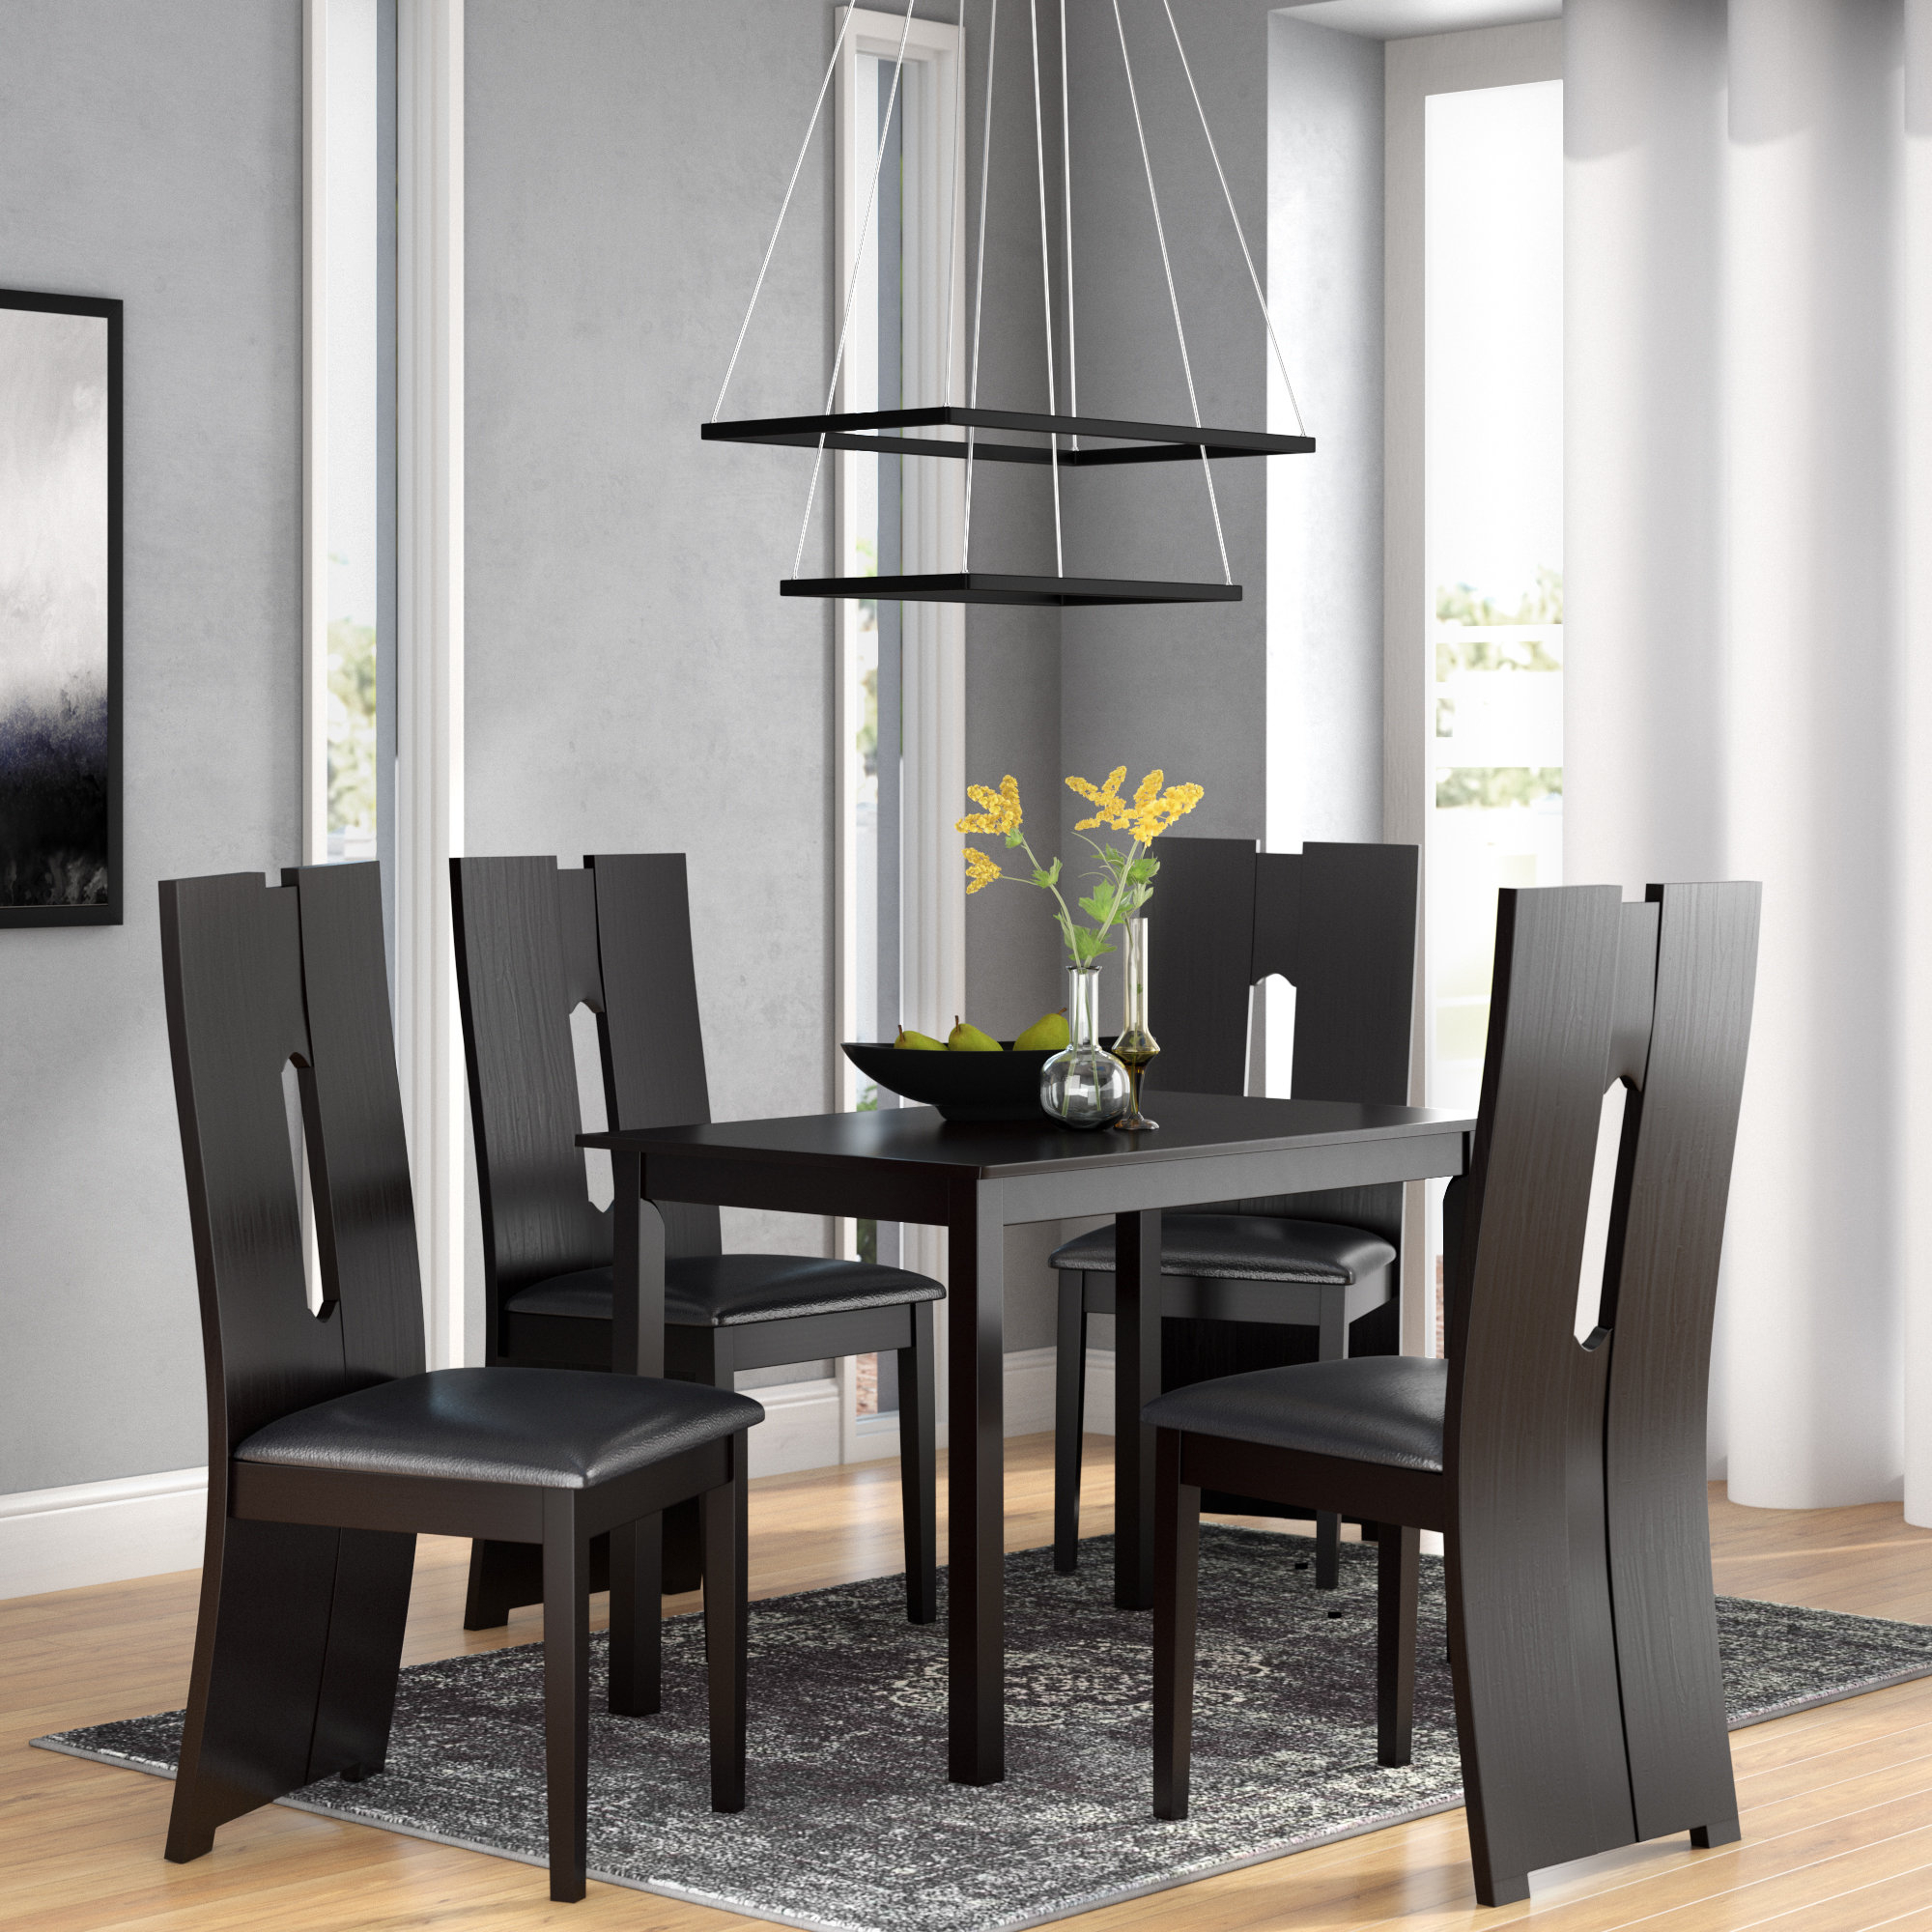 Orren Ellis Onsted Modern And Contemporary 5 Piece Breakfast Nook For Famous 5 Piece Breakfast Nook Dining Sets (#12 of 20)